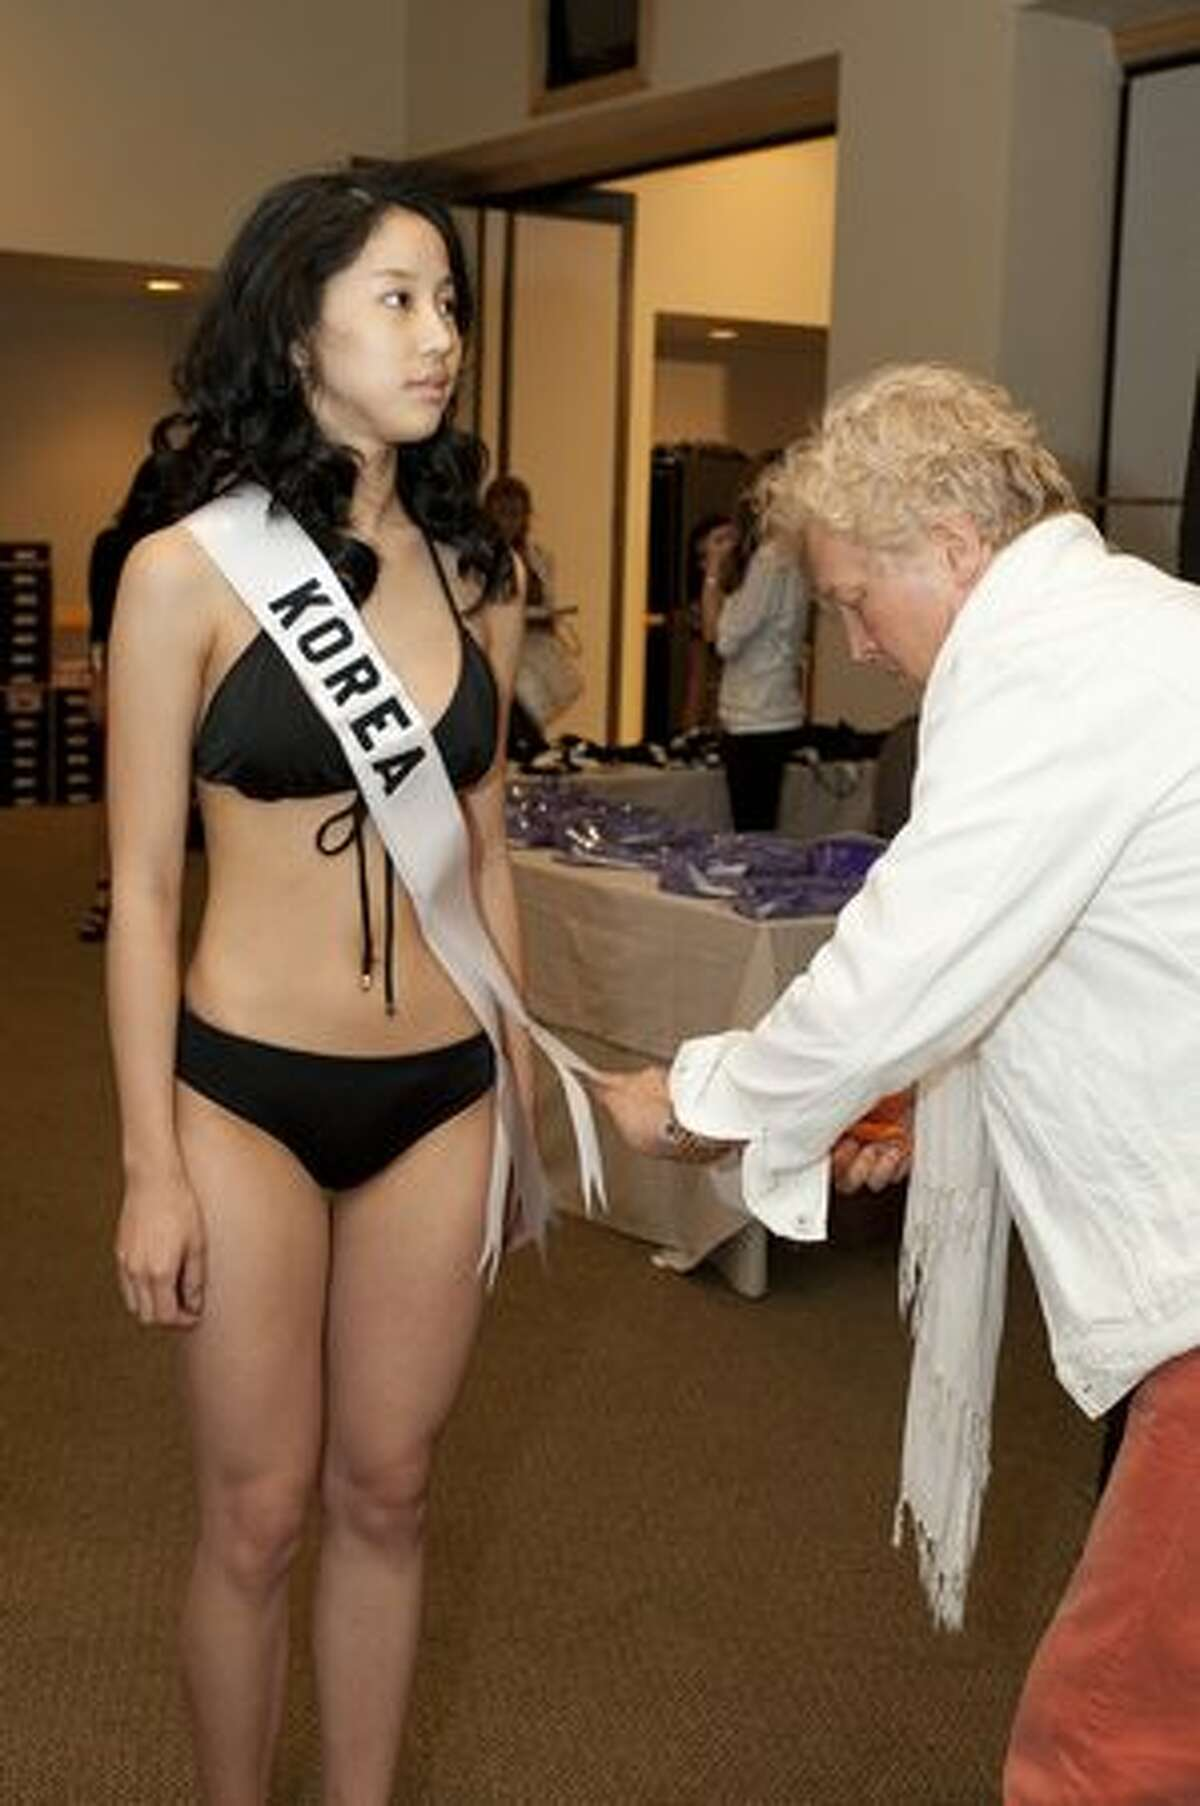 Joori Kim, Miss Korea 2010 gets her country sash as she starts the registration and fitting process.